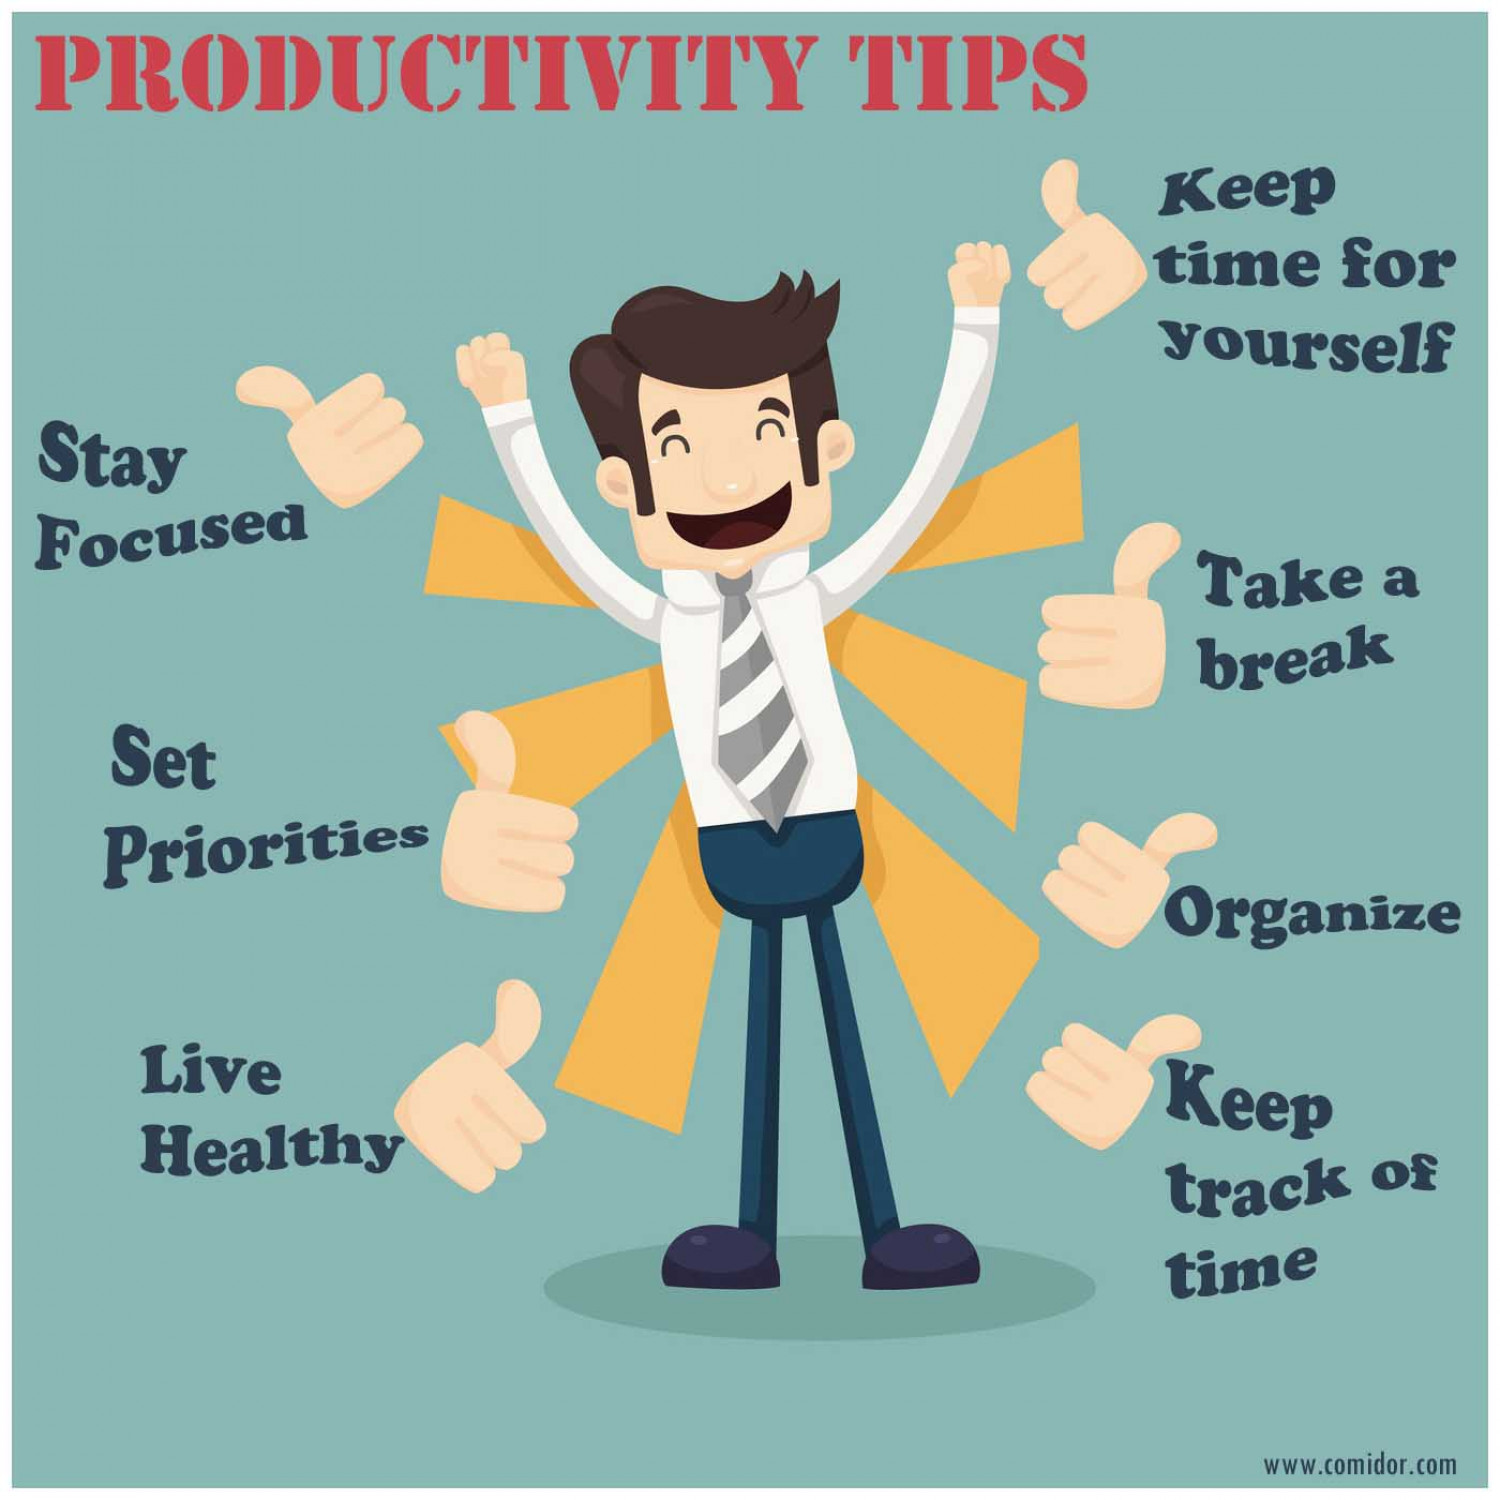 Personal Productivity Tips Infographic